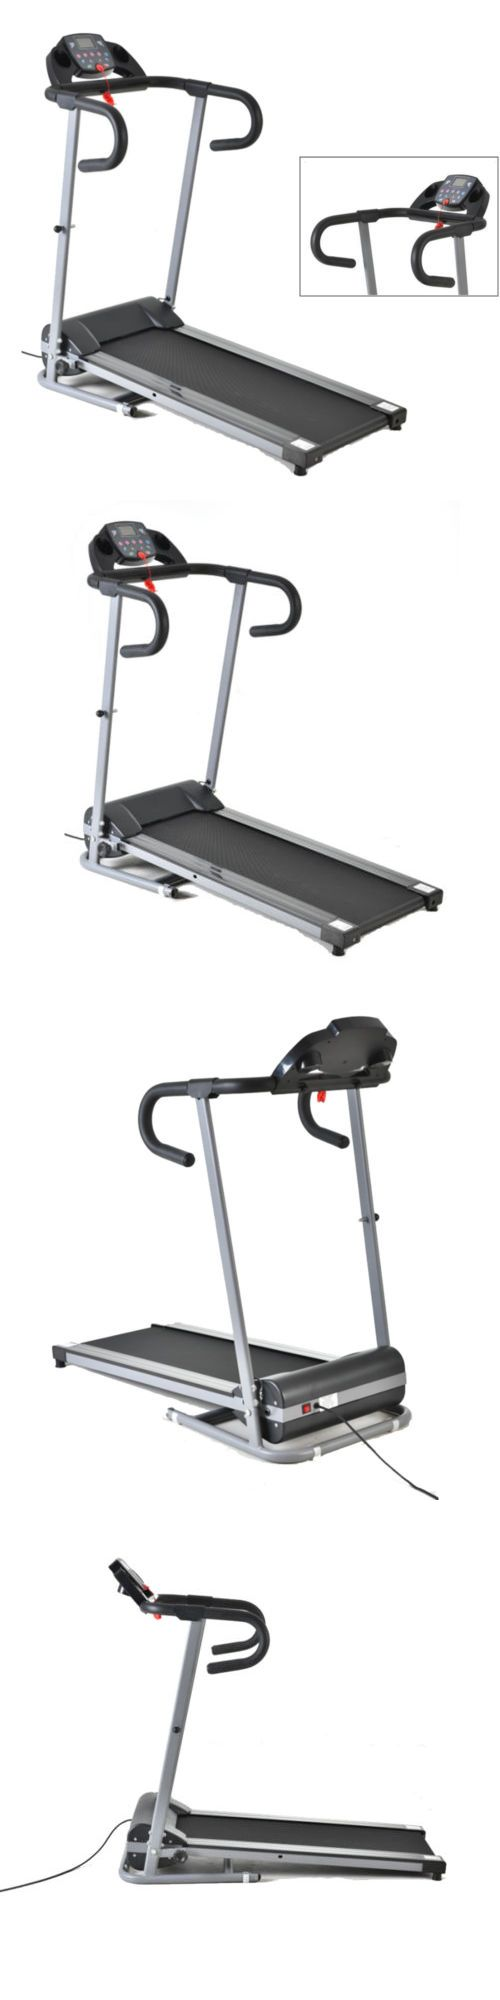 Treadmills 15280: Electric Fitness Treadmill Incline Walking Exercise Machine 500W Running Workout -> BUY IT NOW ONLY: $175.99 on eBay!